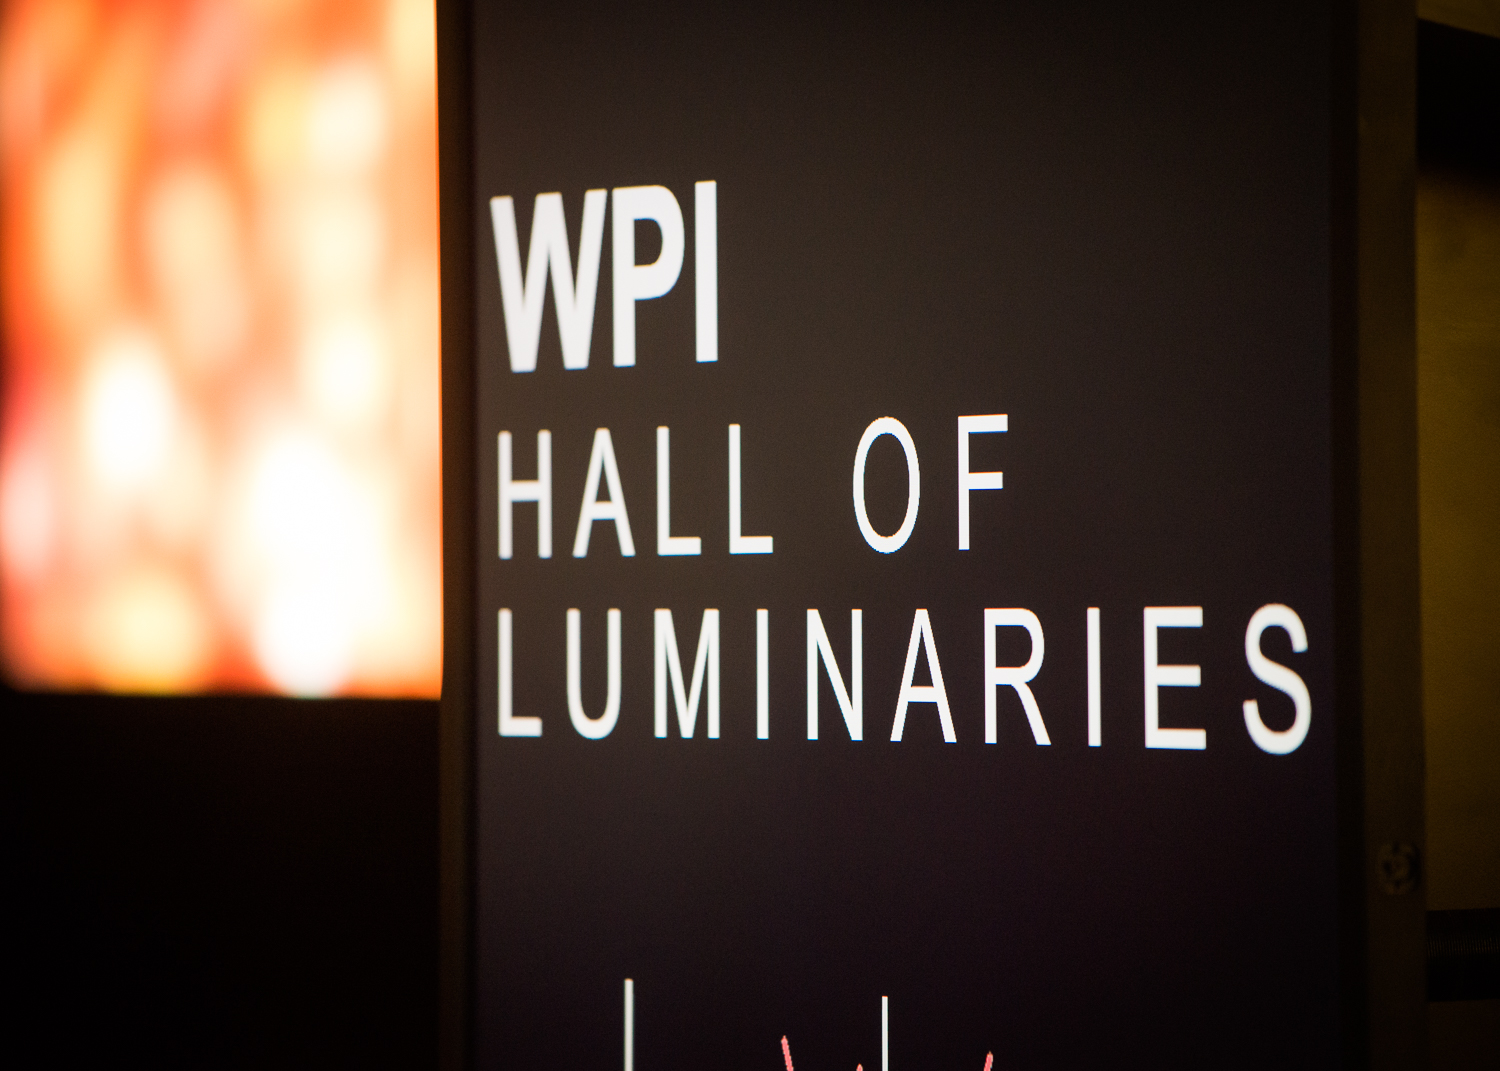 WPI Hall of Luminaries